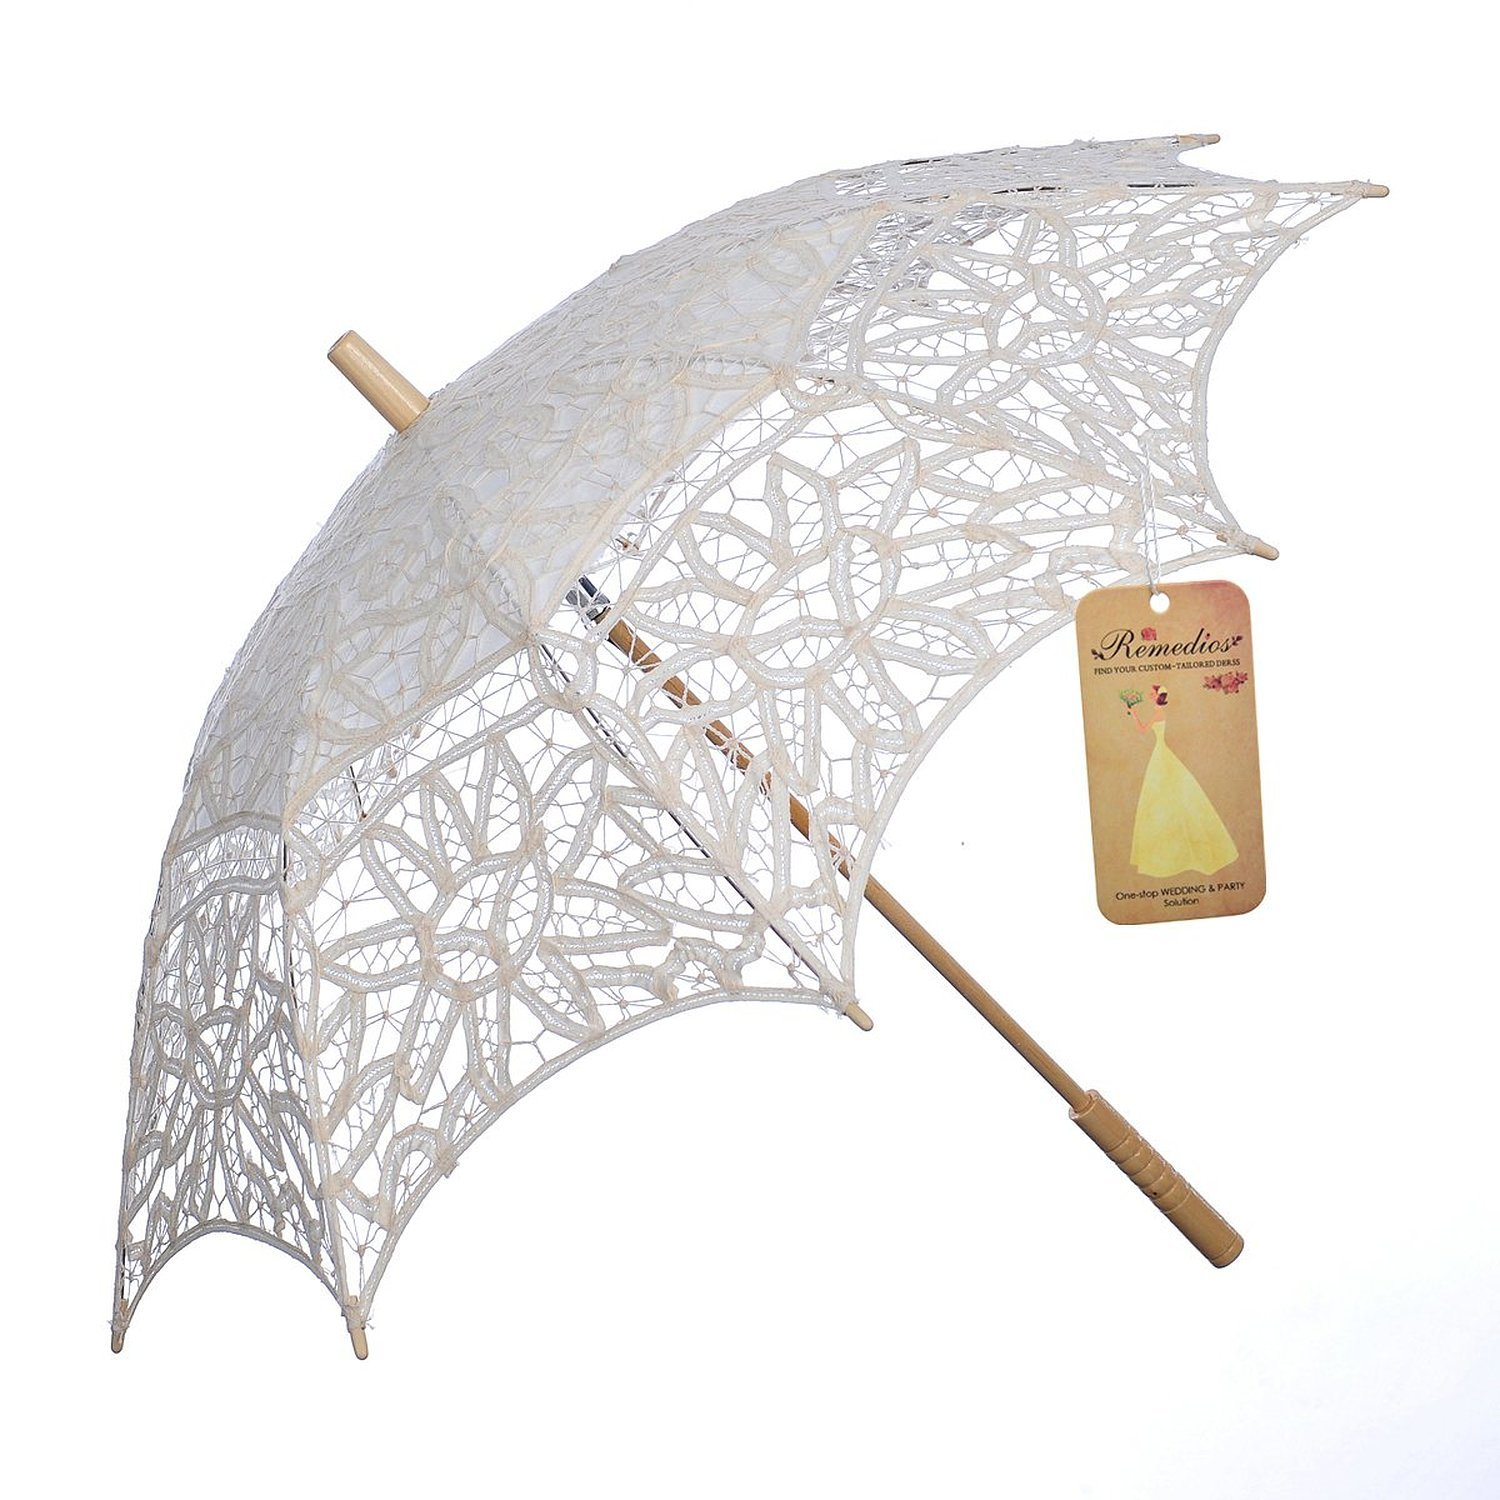 Topwedding Embroidered Cotton Lace Wedding Parasol Umbrella Party Decoration, Beige